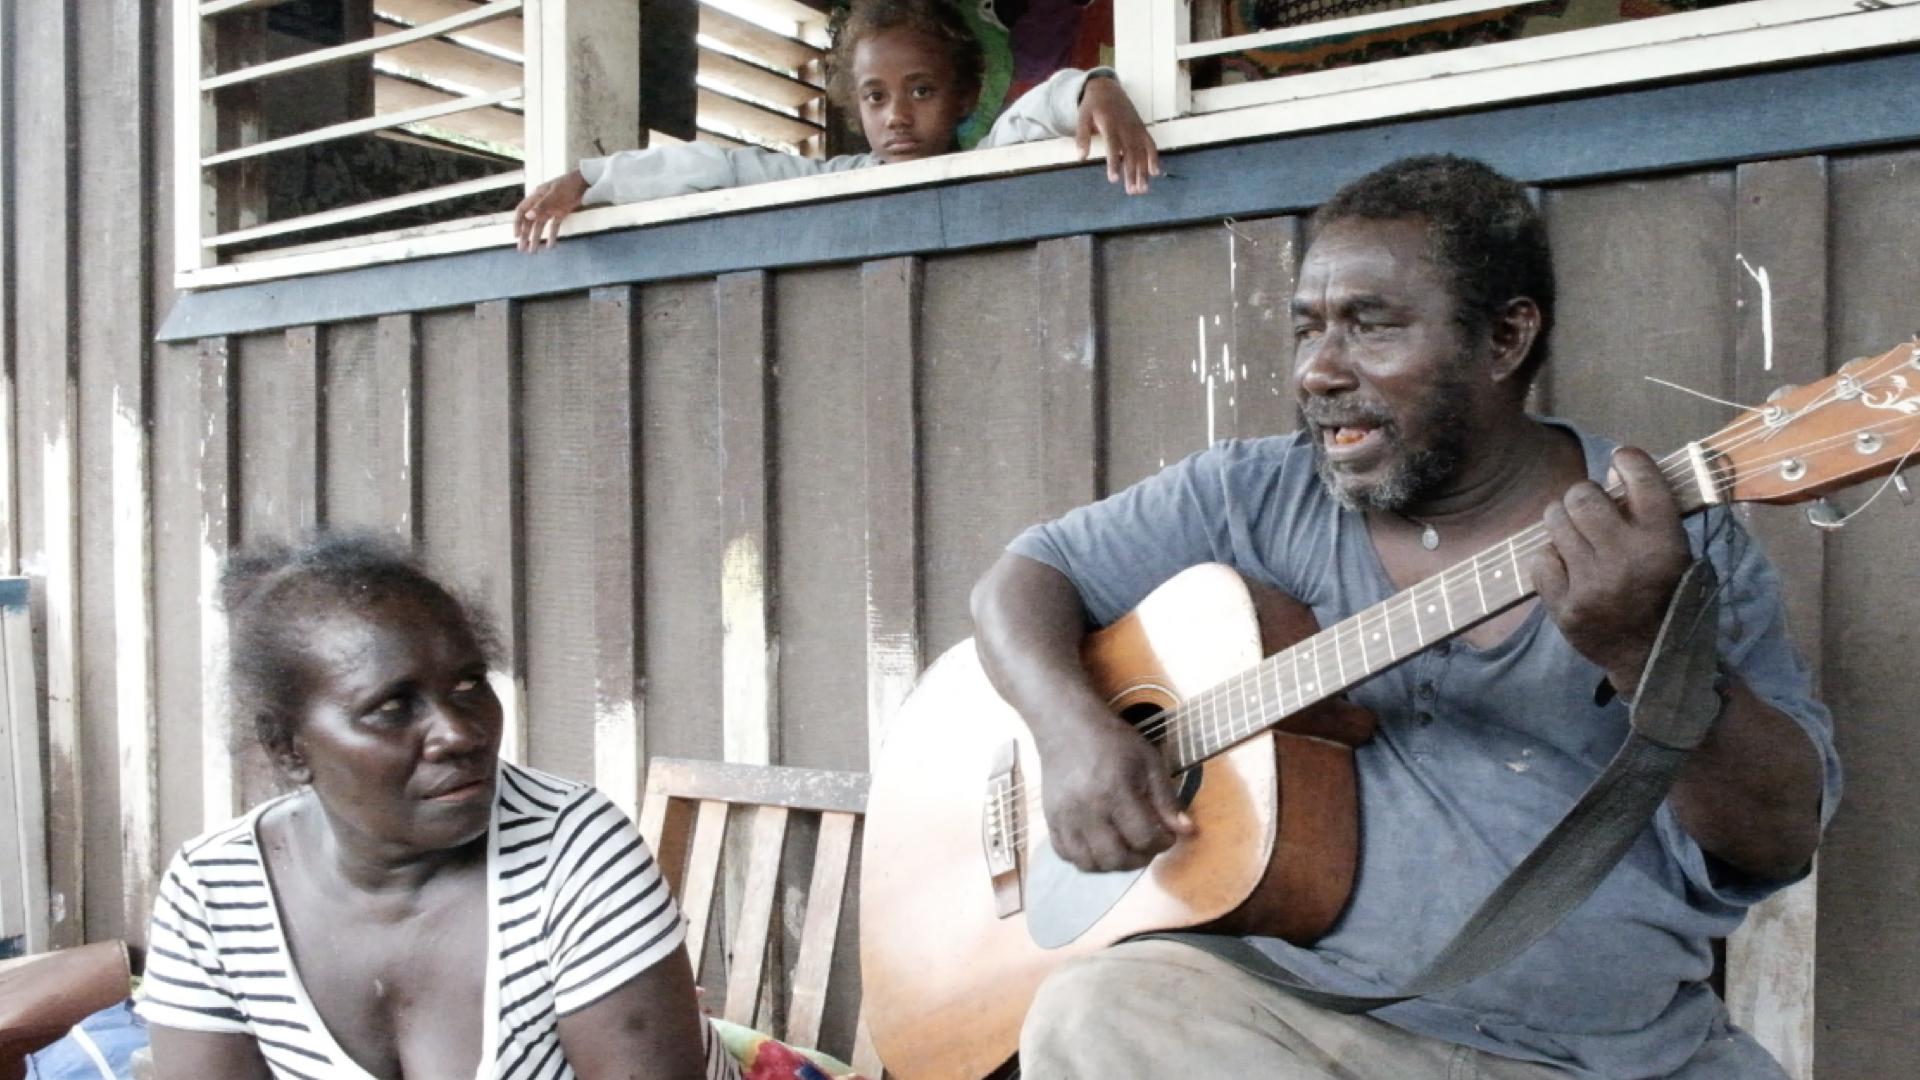 Jimmy's granddaughter looks at the camera as he plays another duet with his wife. Jimmy says climate change adaptation is about balancing the inequalities and addressing the injustices his people are facing as a result of industrial countries carbon emissions.